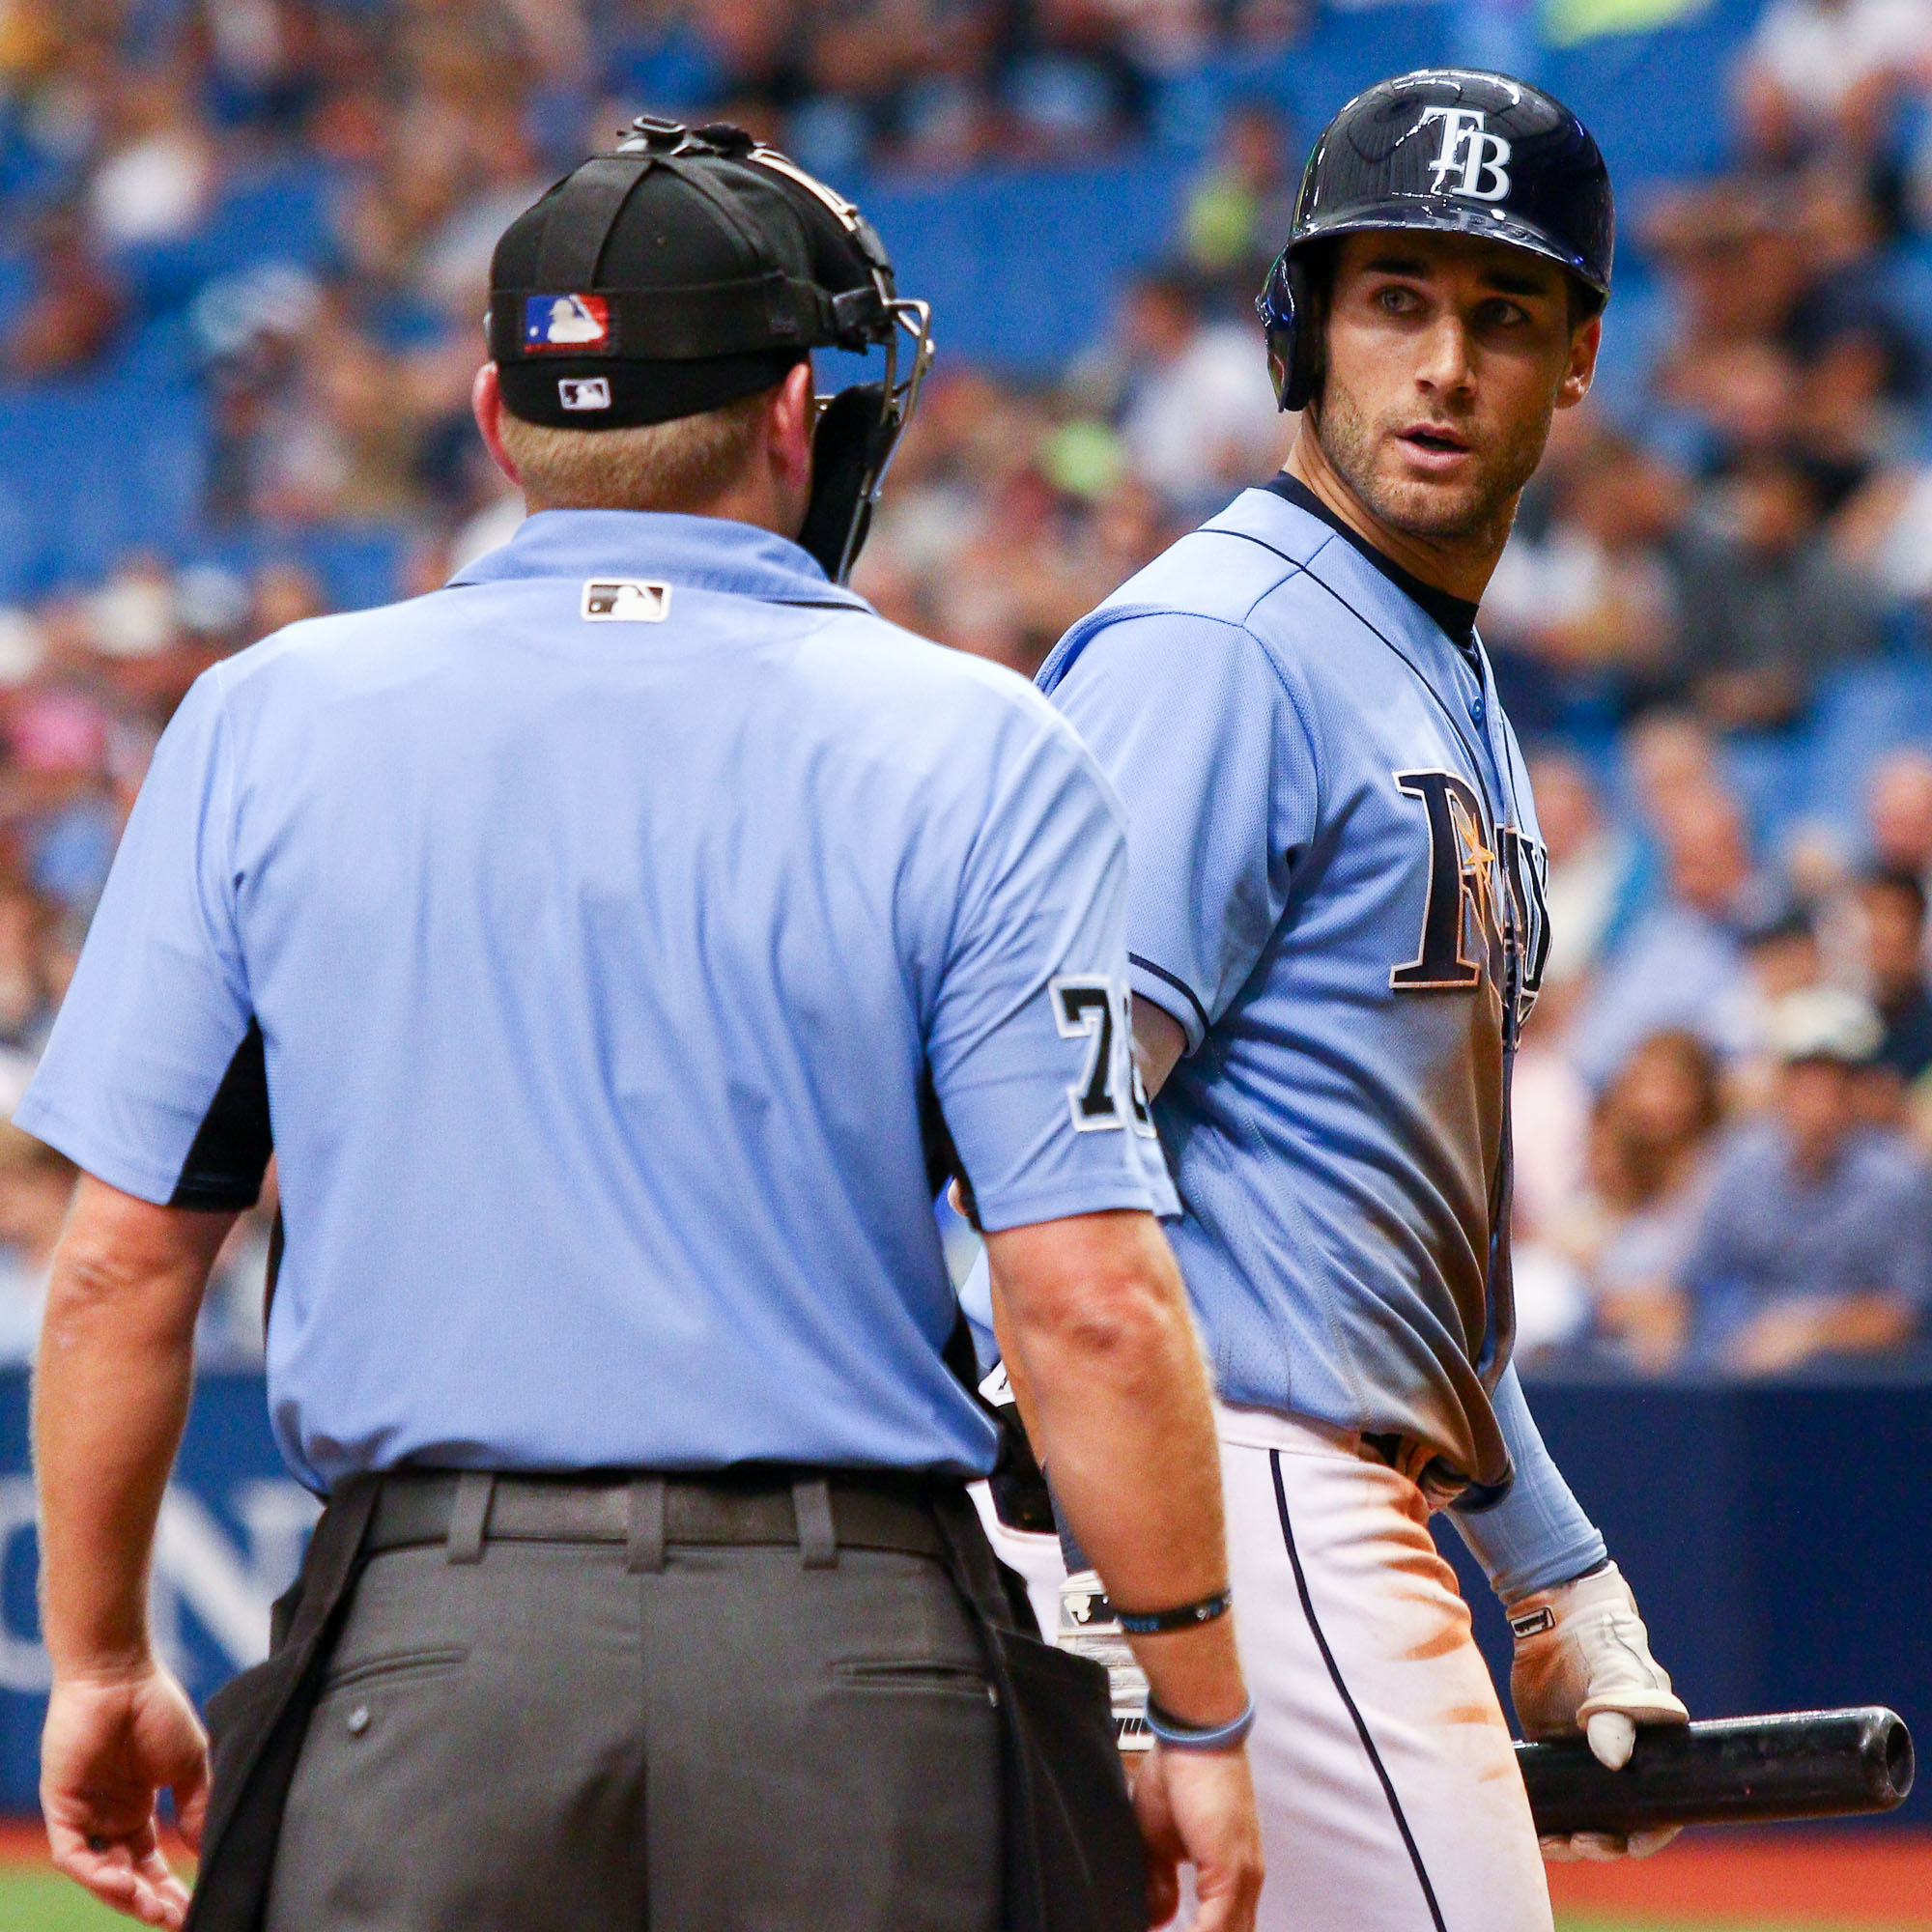 Kiermaier walks to the dugout after disagreeing with a call./ANDREW J. KRAMER